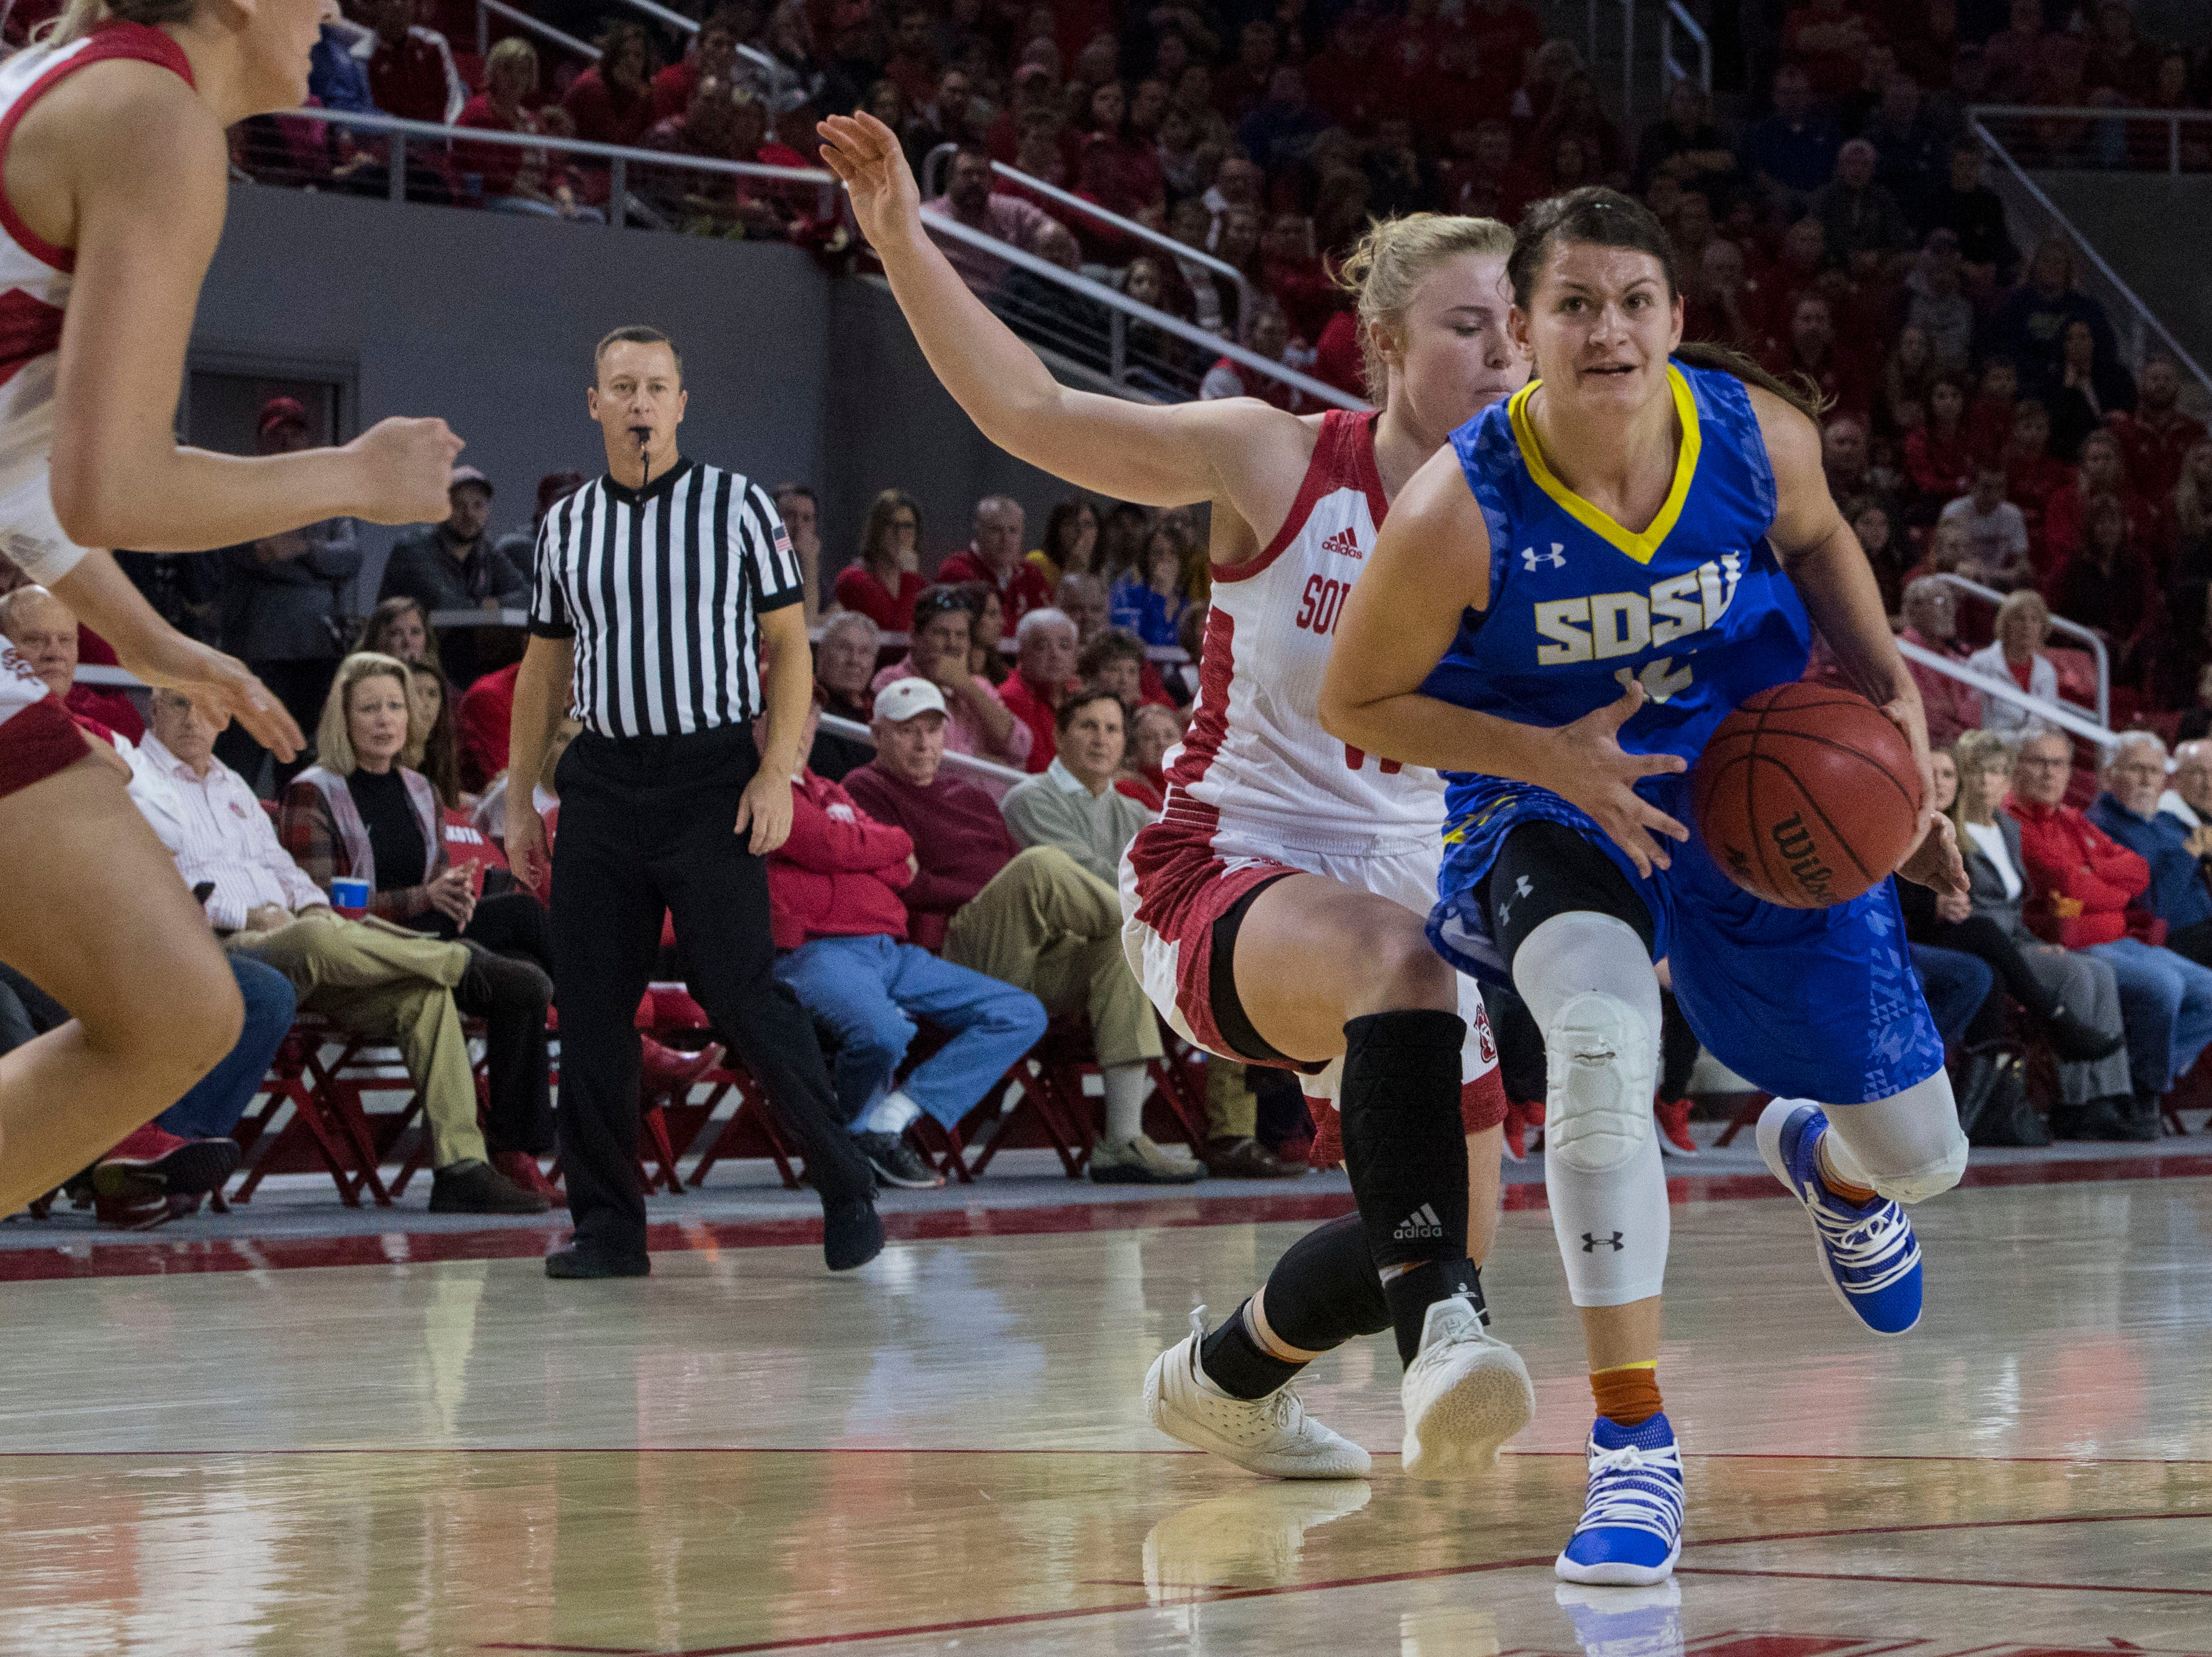 SDSU's Macy Miller (12) dribbles the ball during a game against USD, Sunday, Jan. 6, 2019 in Vermillion, S.D.